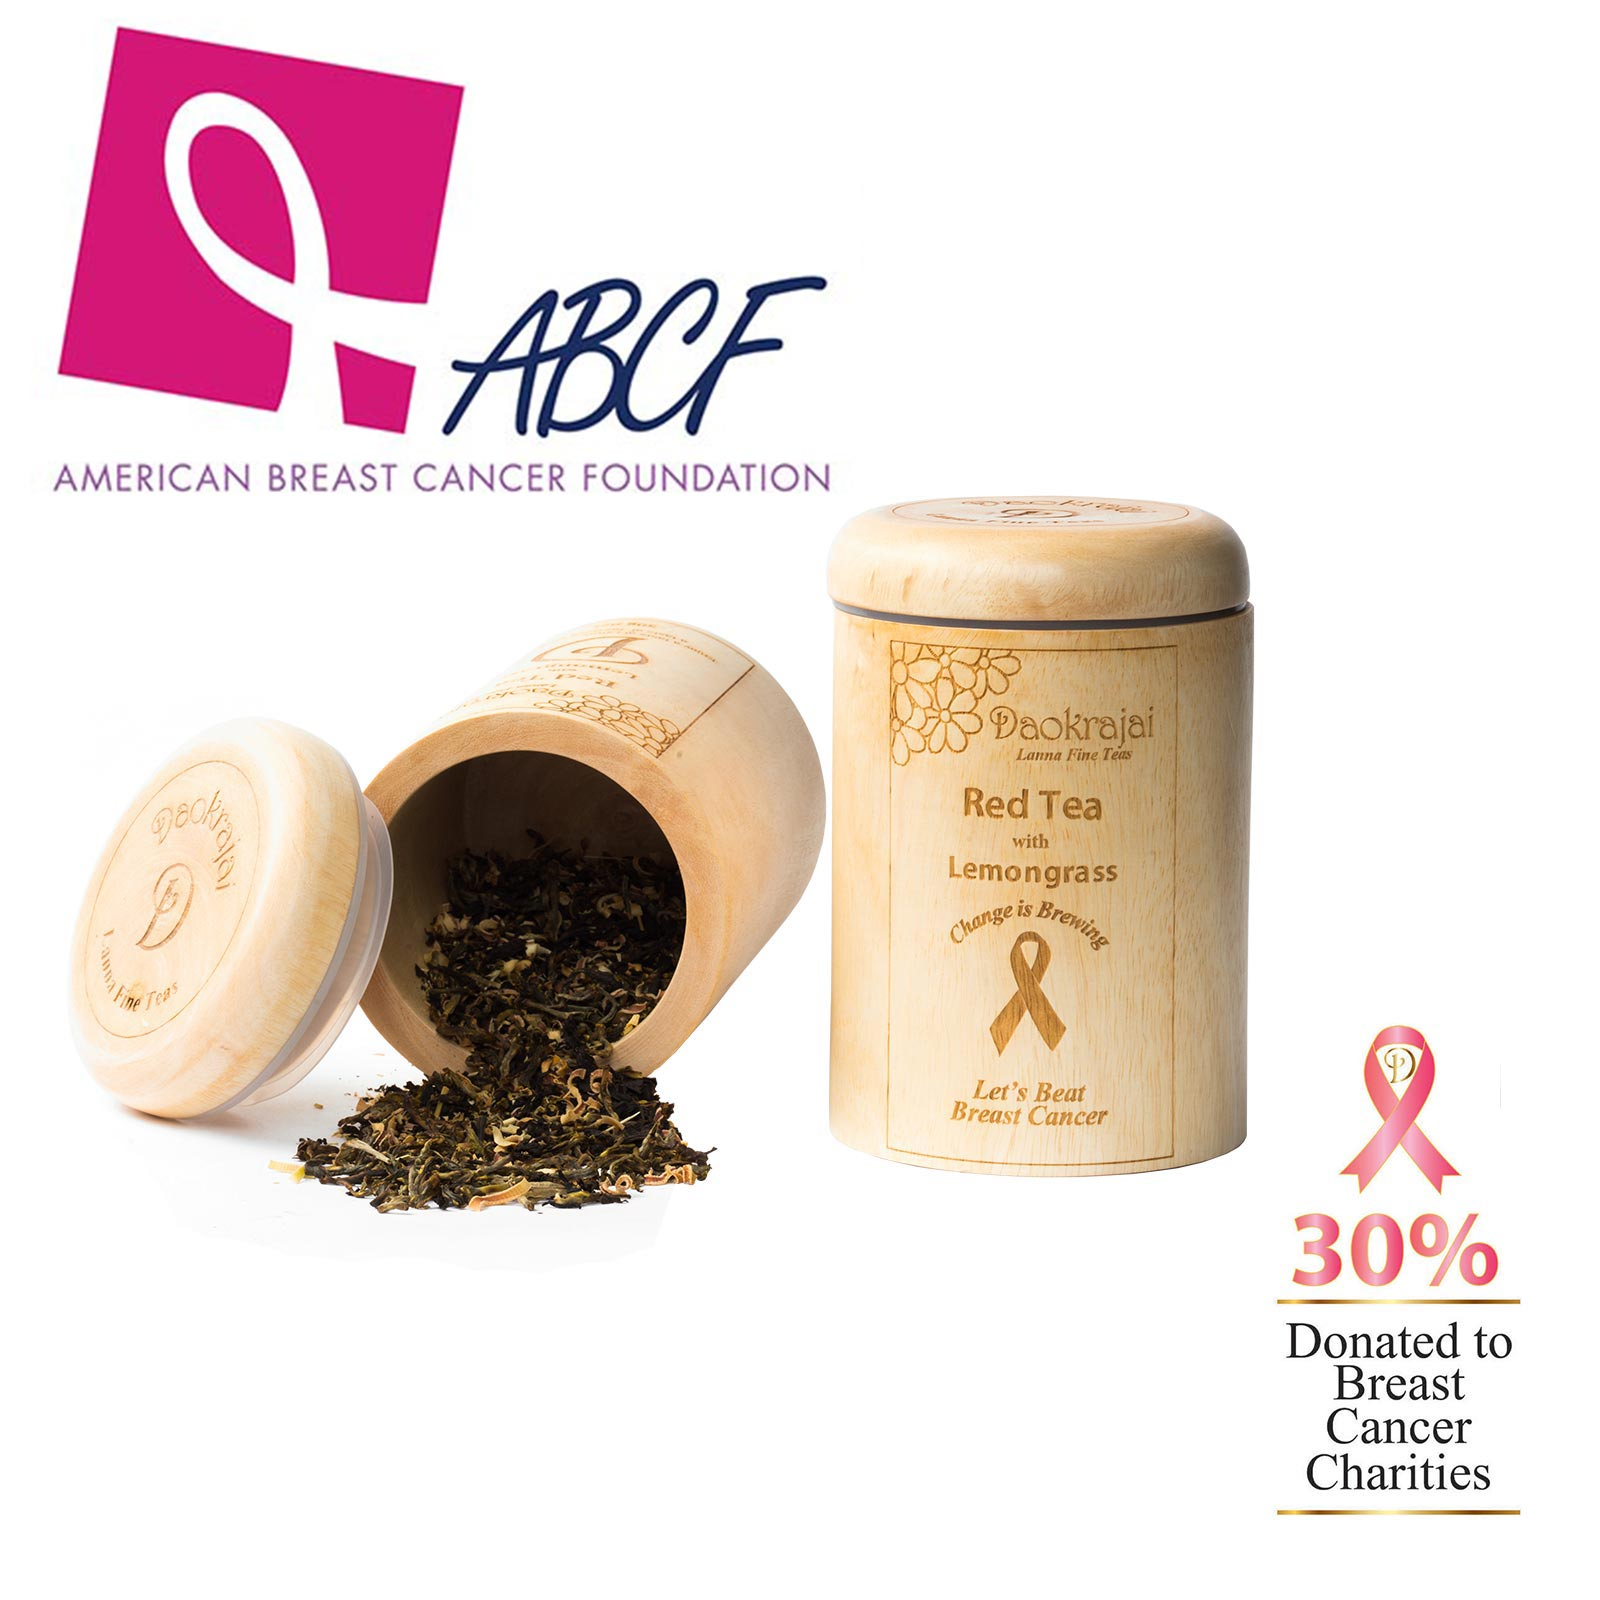 Red Tea with Lemongrass supporting the American Breast Cancer Foundation